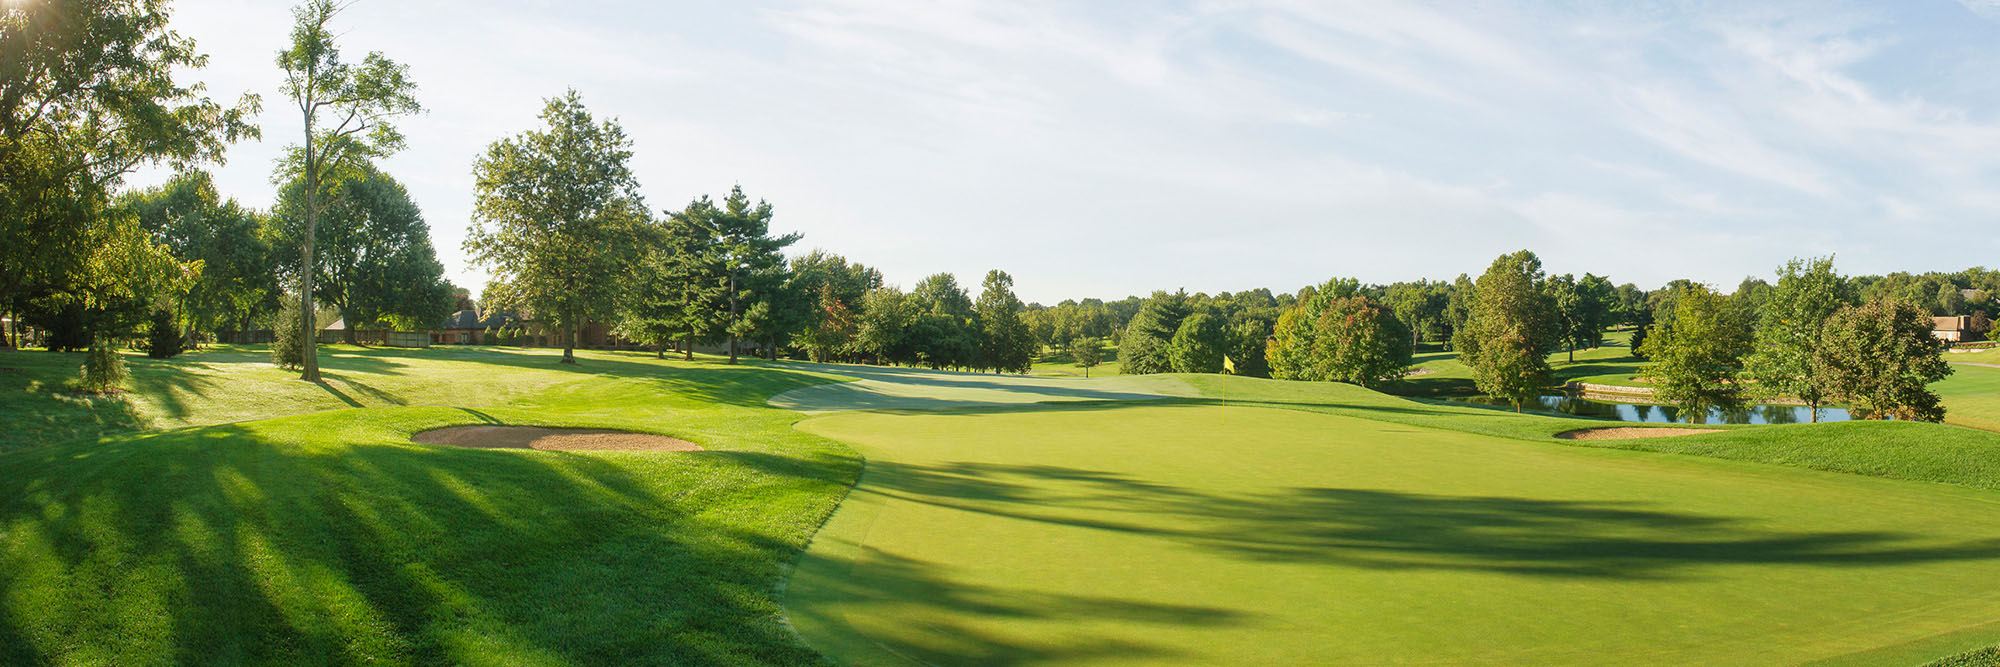 Golf Course Image - Hickory Hills No. 8